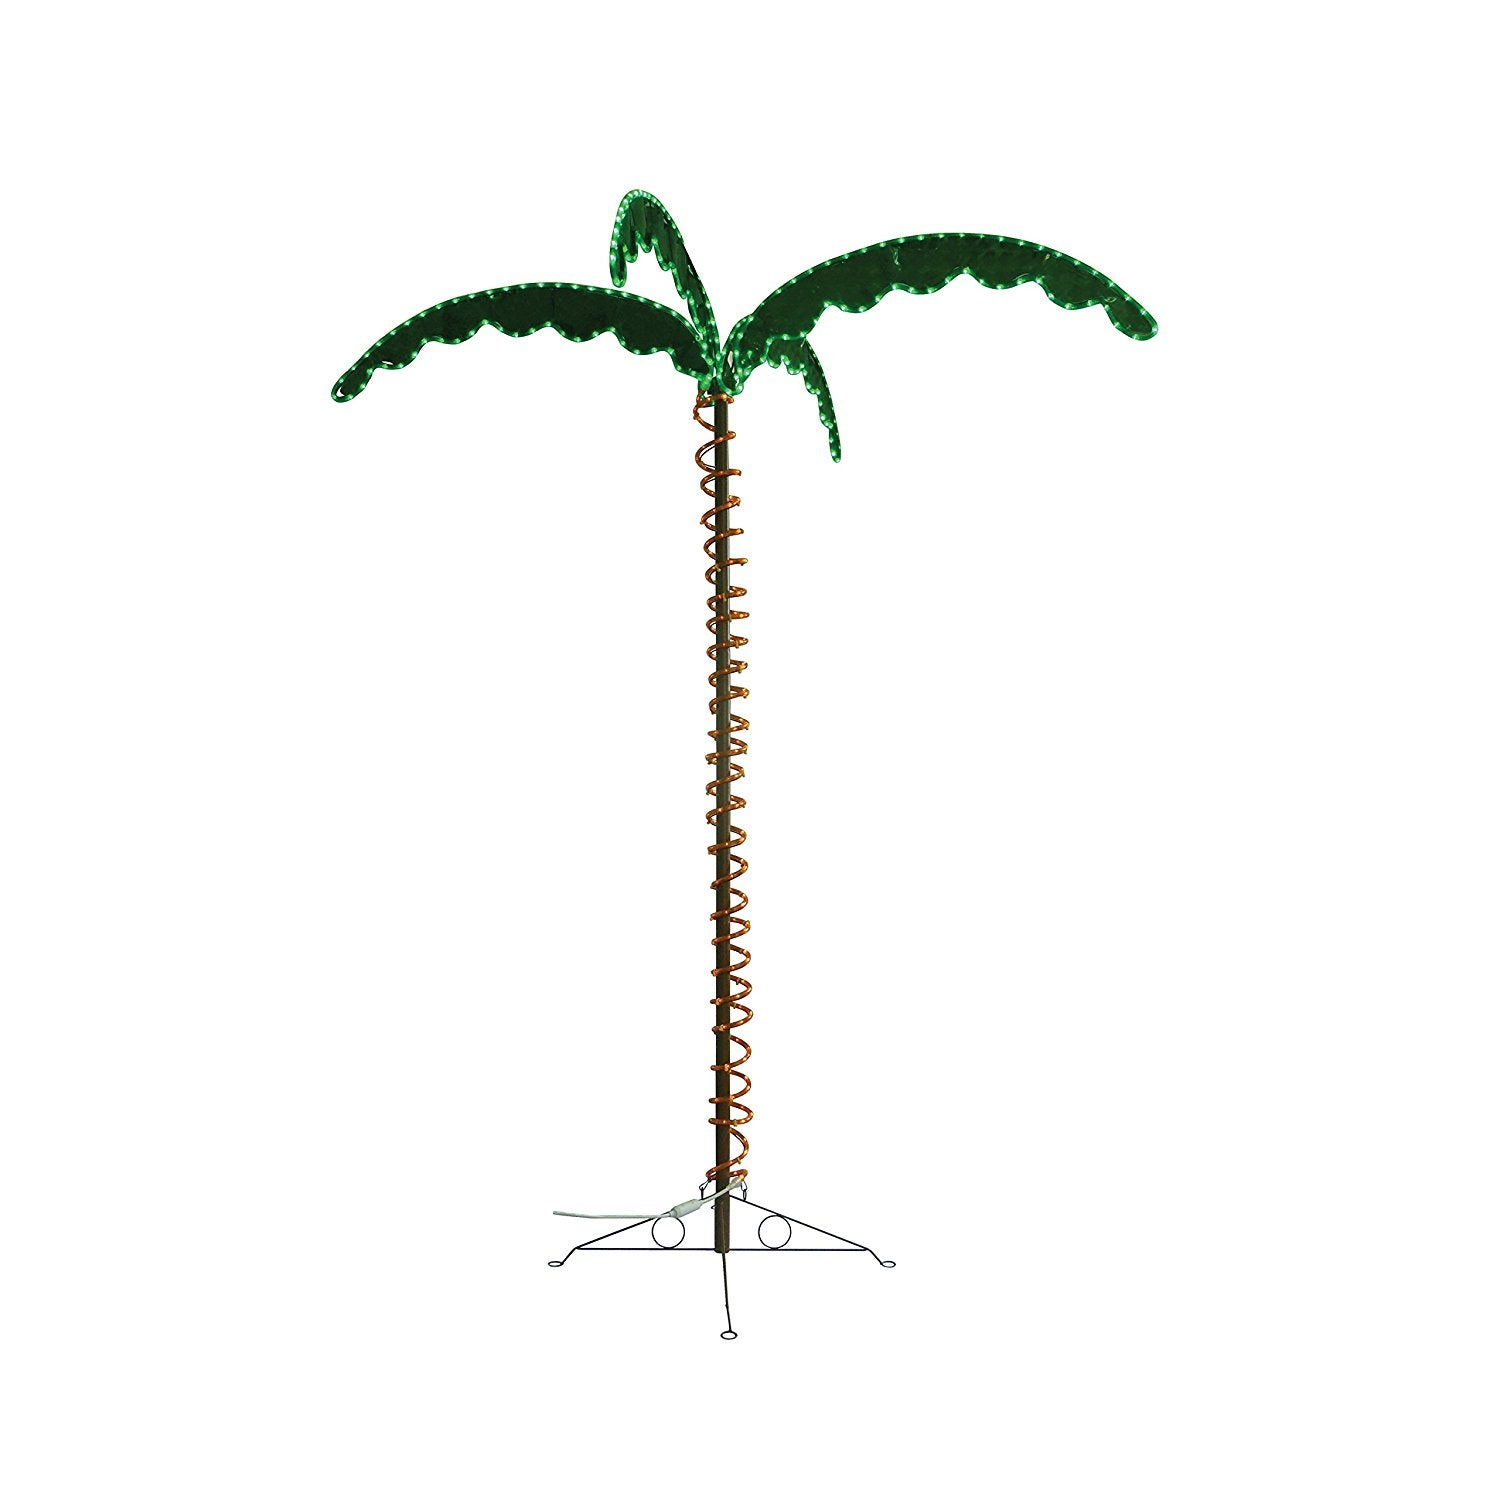 8080104 decorative palm tree rope light 75ft rv parts online canada 8080104 decorative palm tree rope light 75ft aloadofball Images